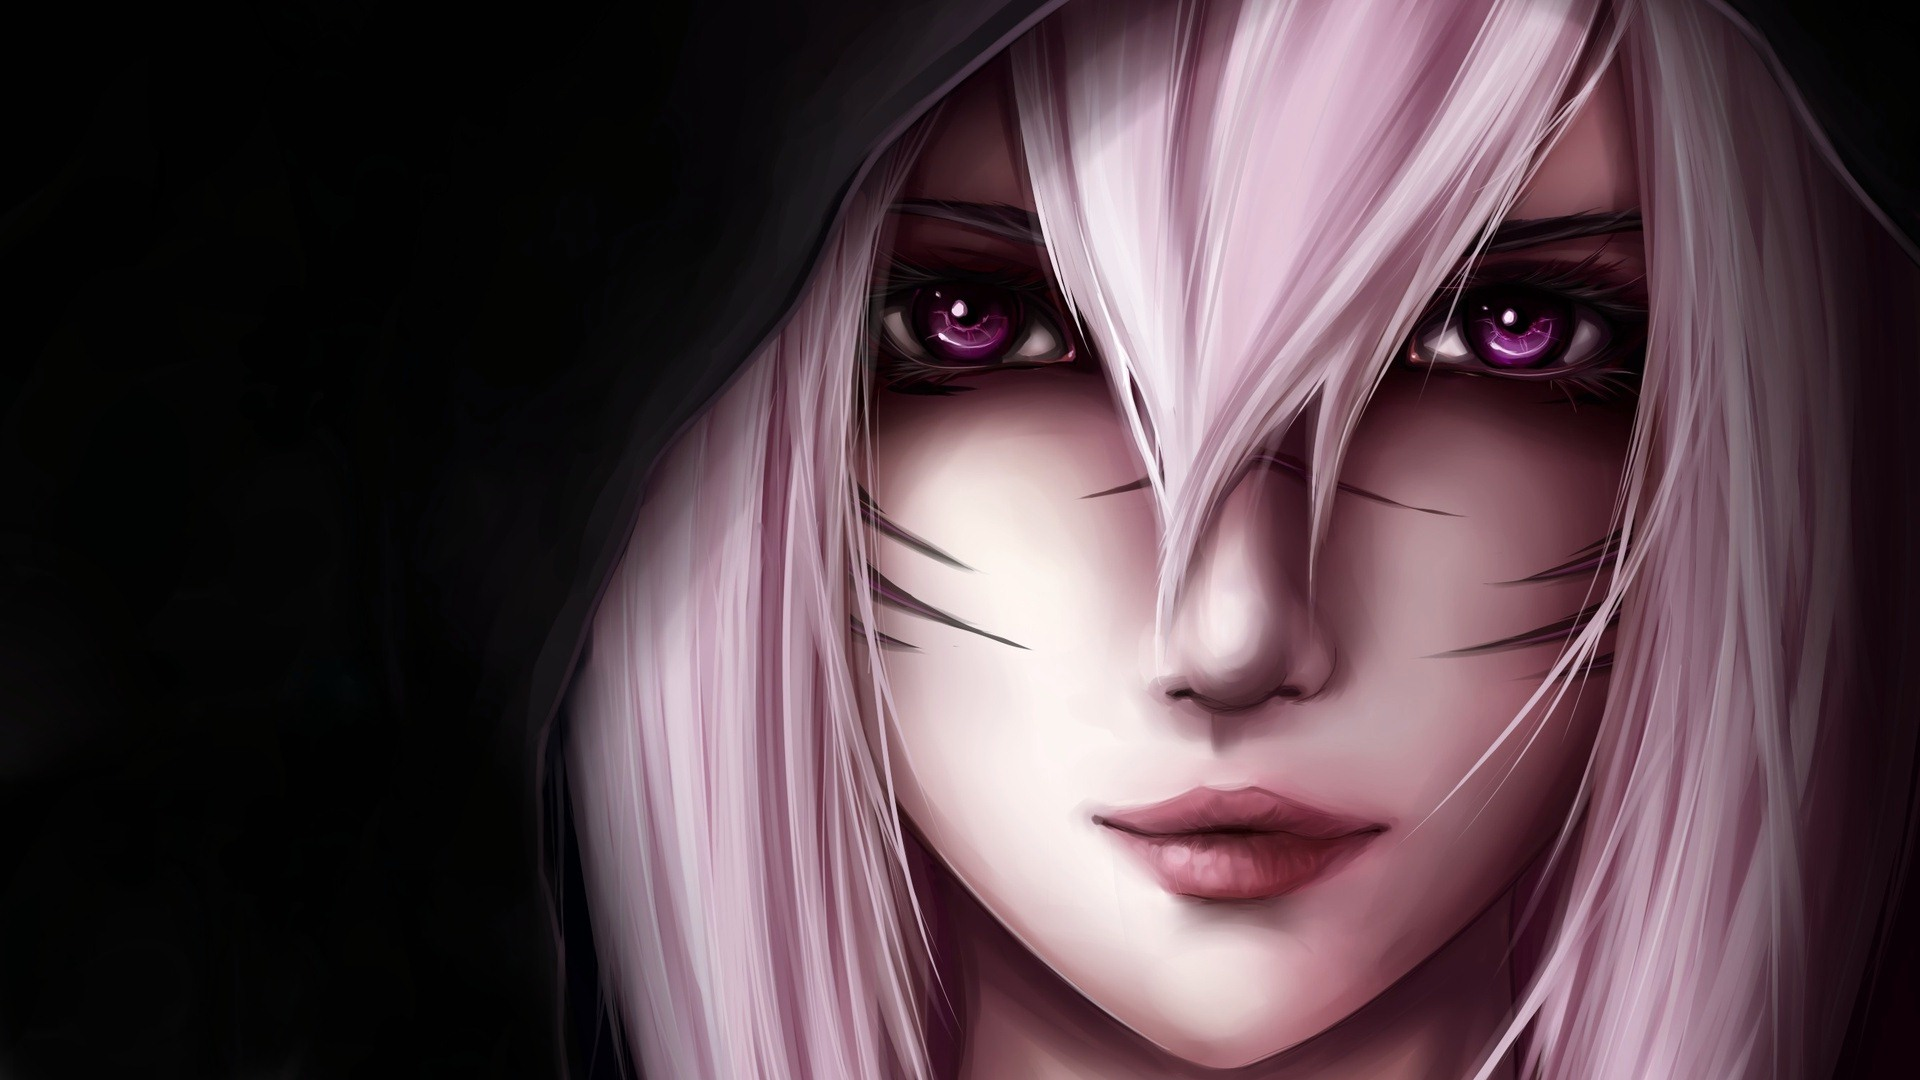 Erin007 images beautiful pink eyes anime girl images hd - Beautiful girl anime wallpaper ...